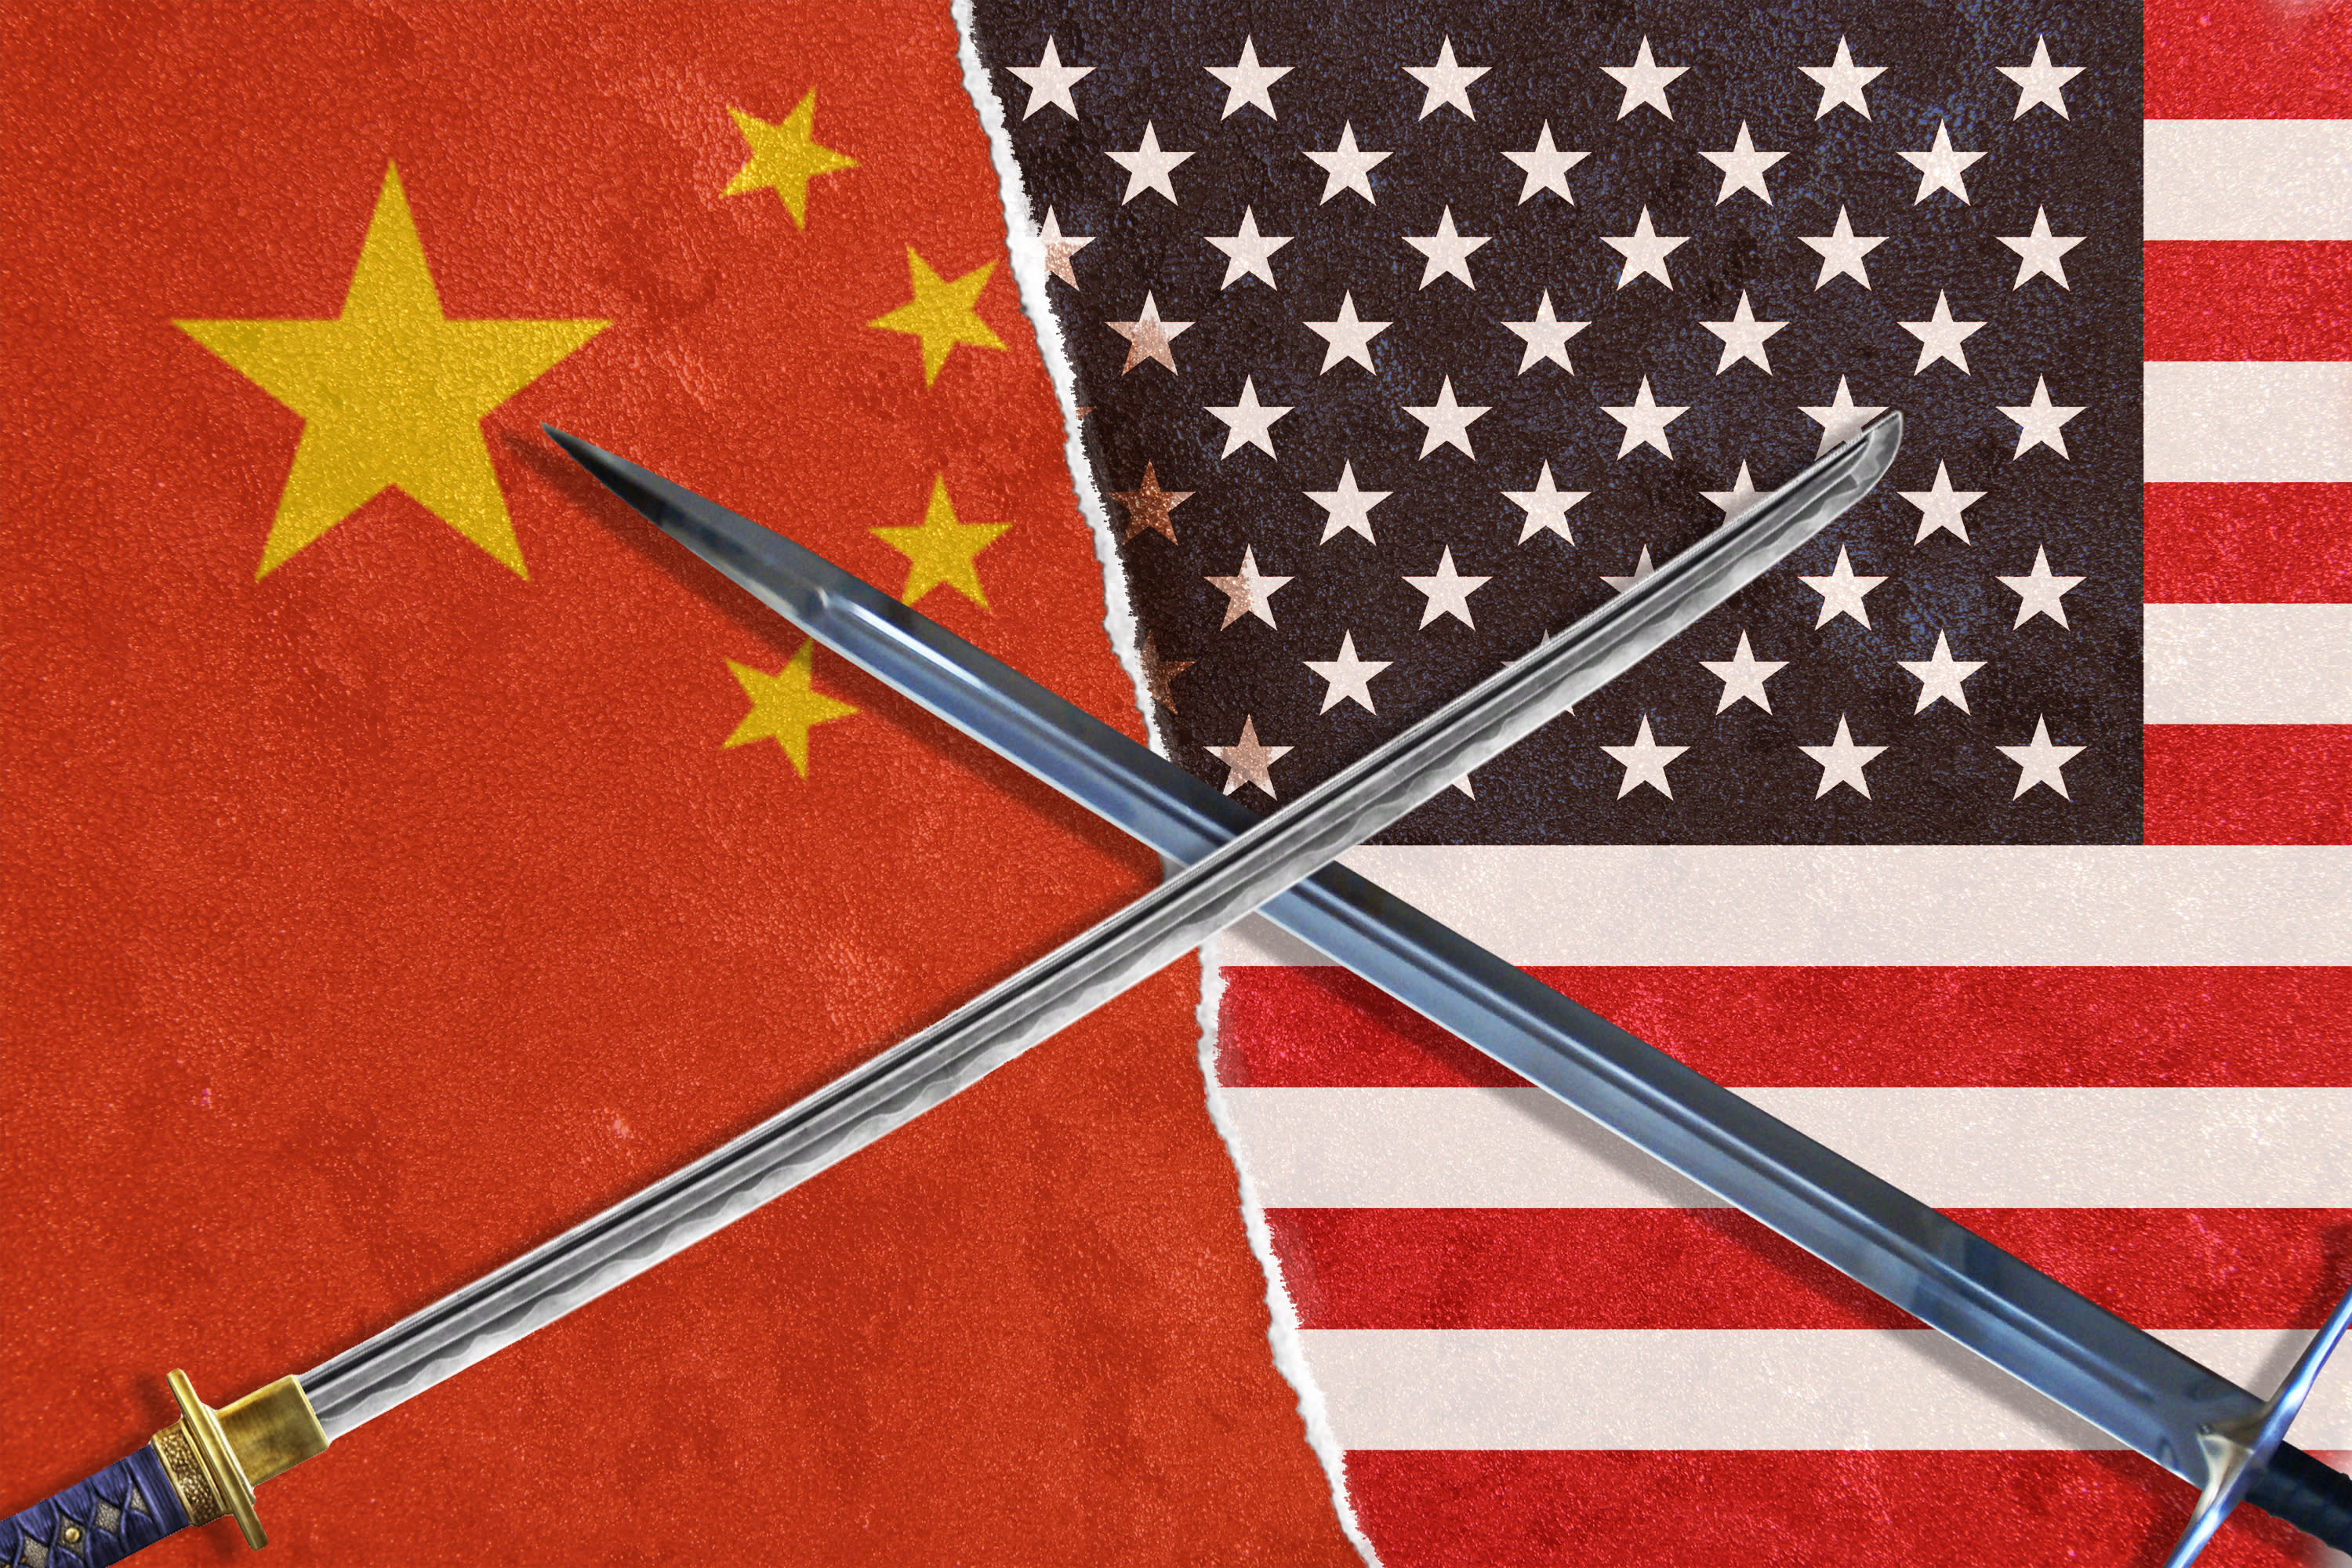 China could unleash this weapon on the financial markets to wallop the US